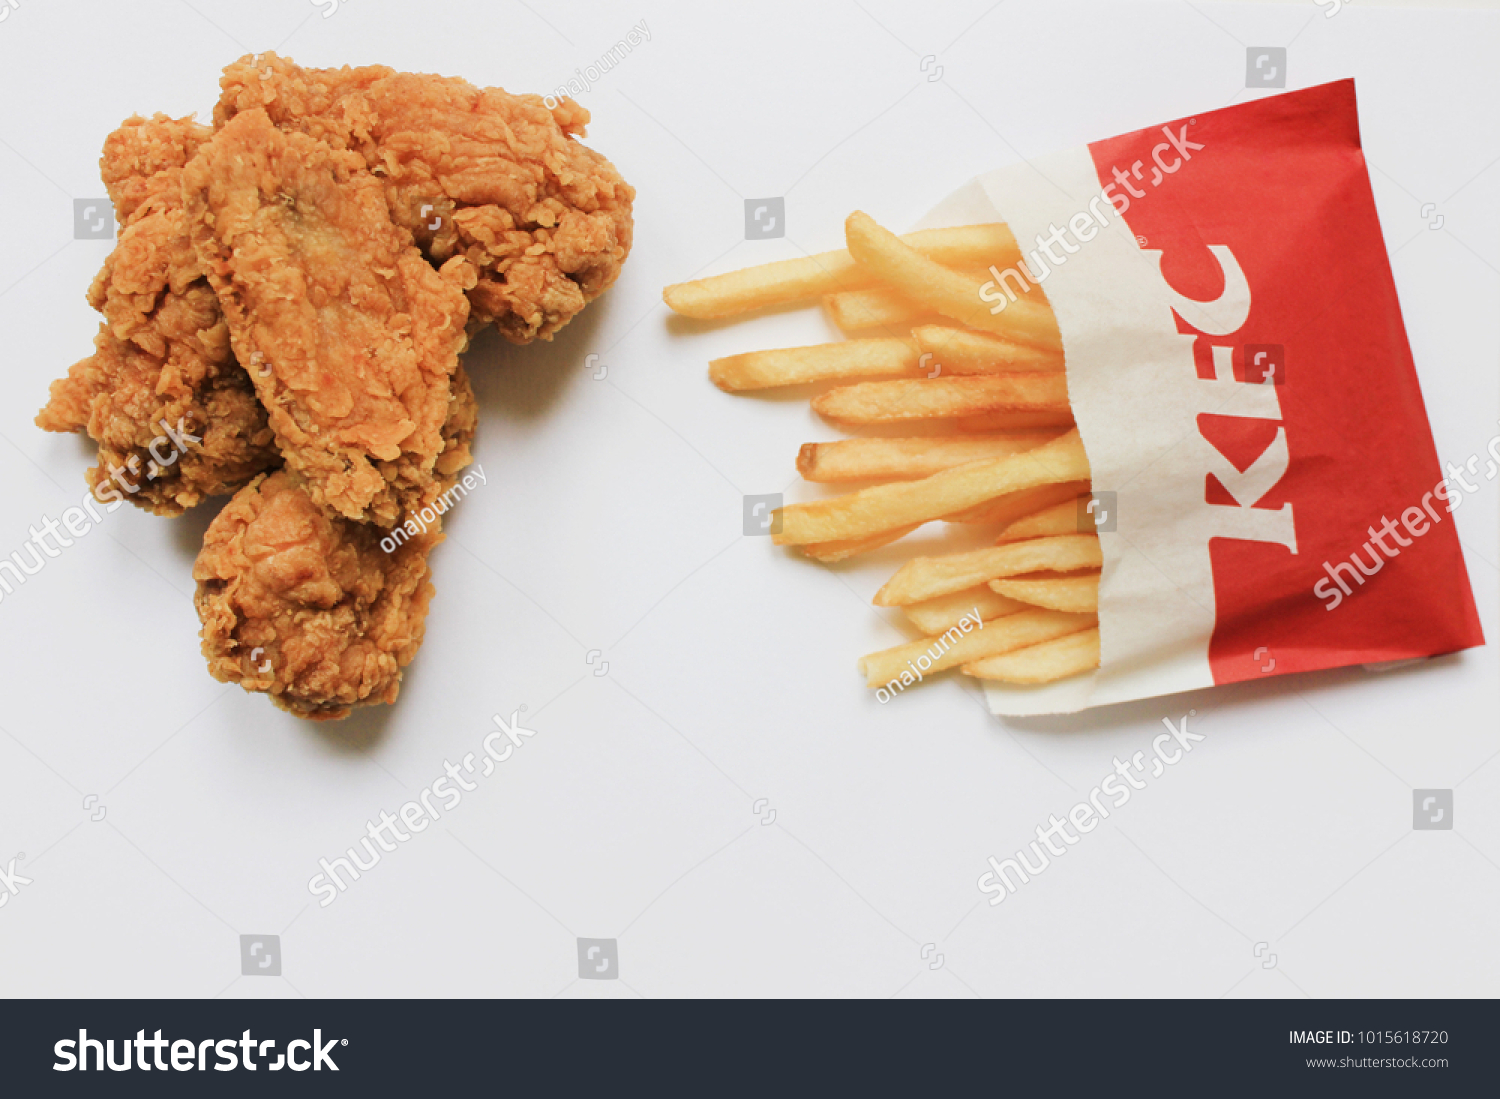 MOSCOW RUSSIA FEBRUARY 1 2018 KFC Stock Photo (Edit Now) 1015618720 ...